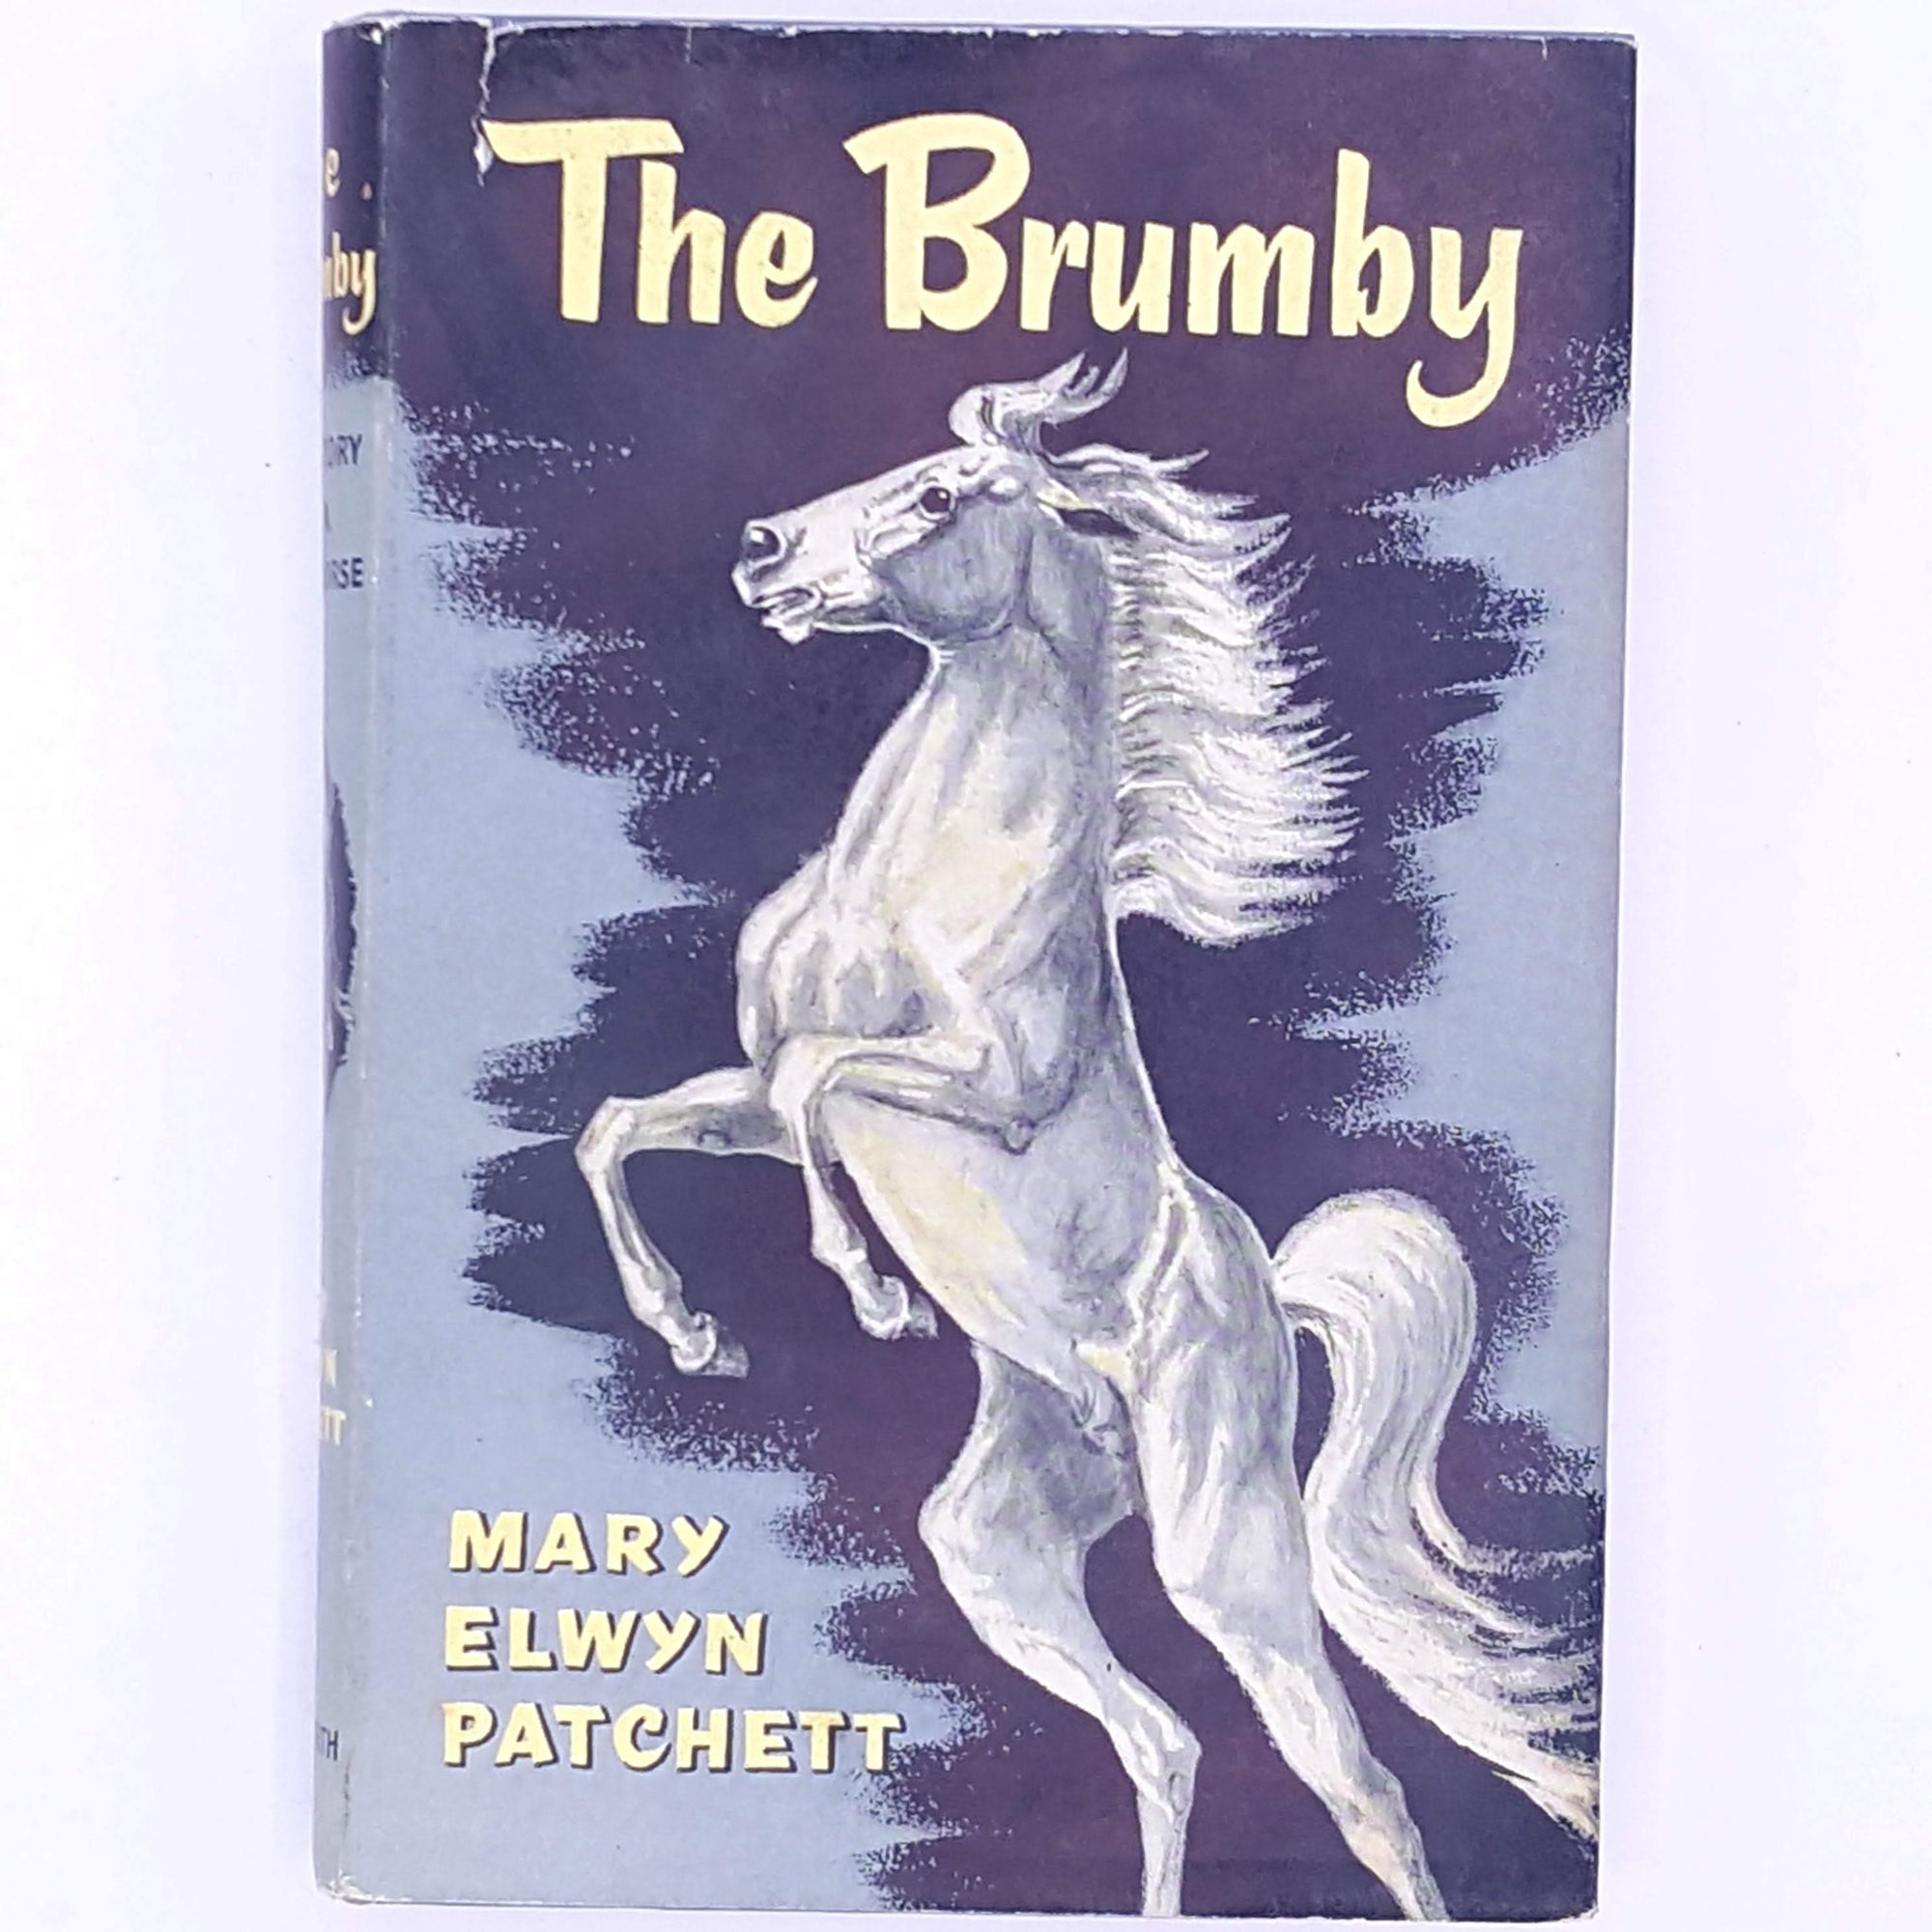 The Brumby, Mary Elwyn Patchett